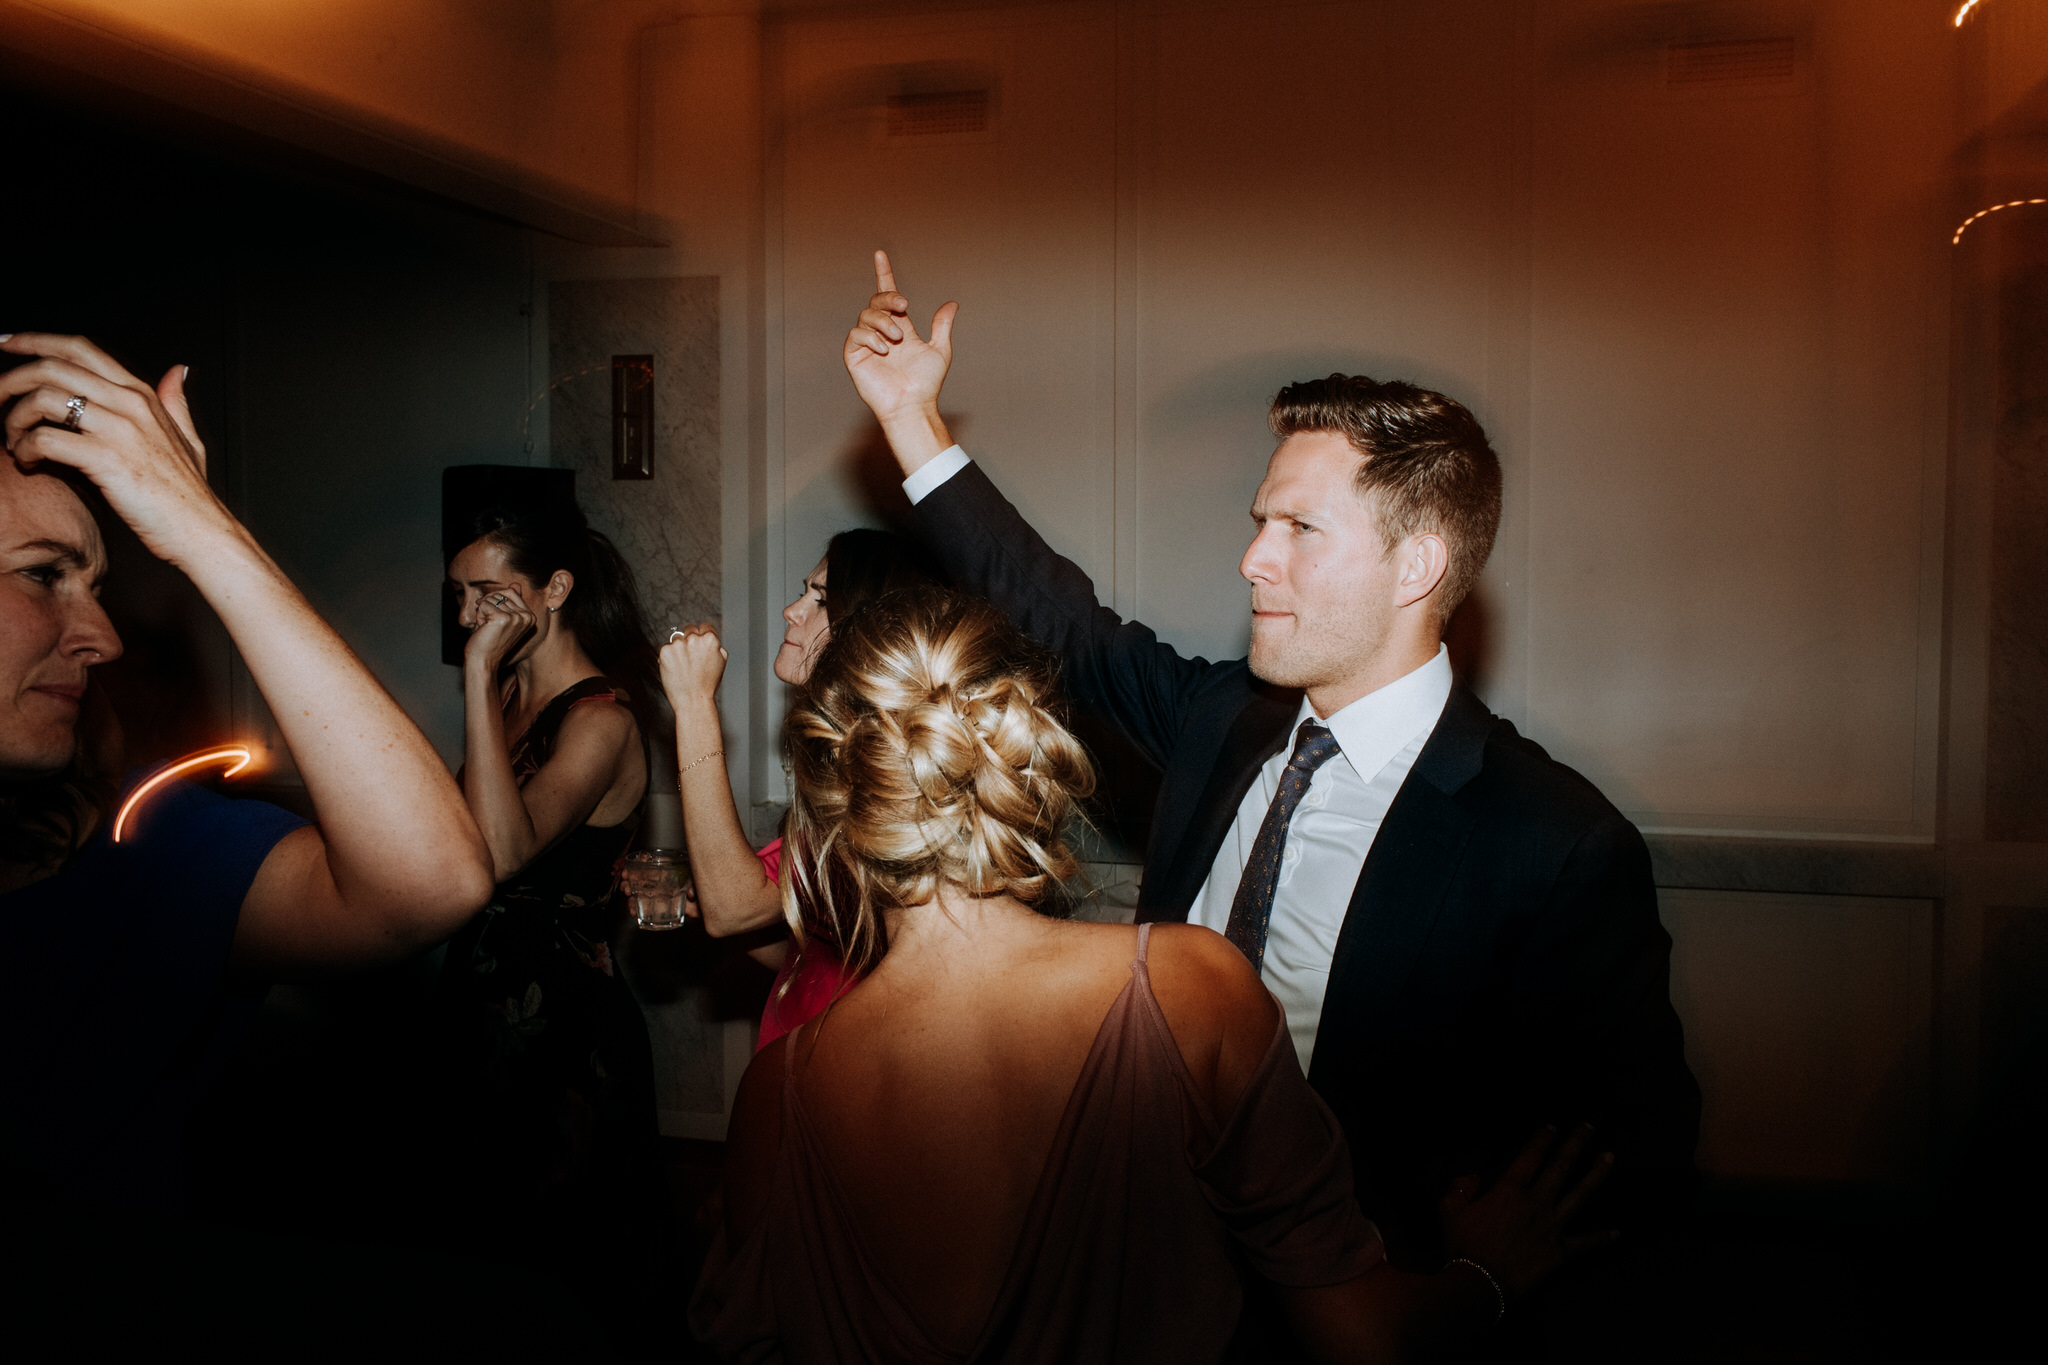 broadview hotel wedding, dance floor photos